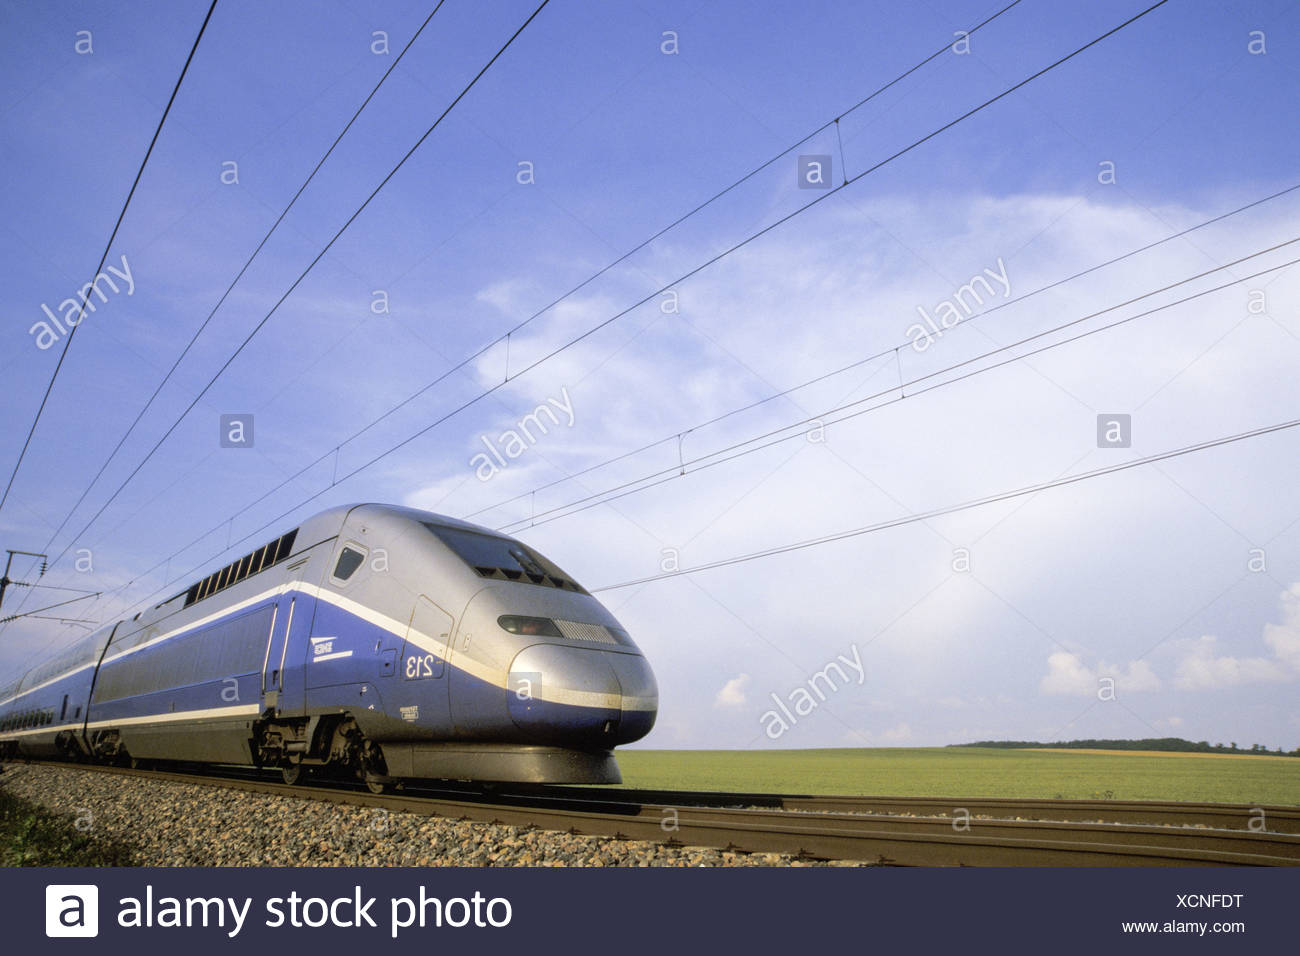 TGV Duplex Paris-Lyon Stock Photo: 283214900 - Alamy